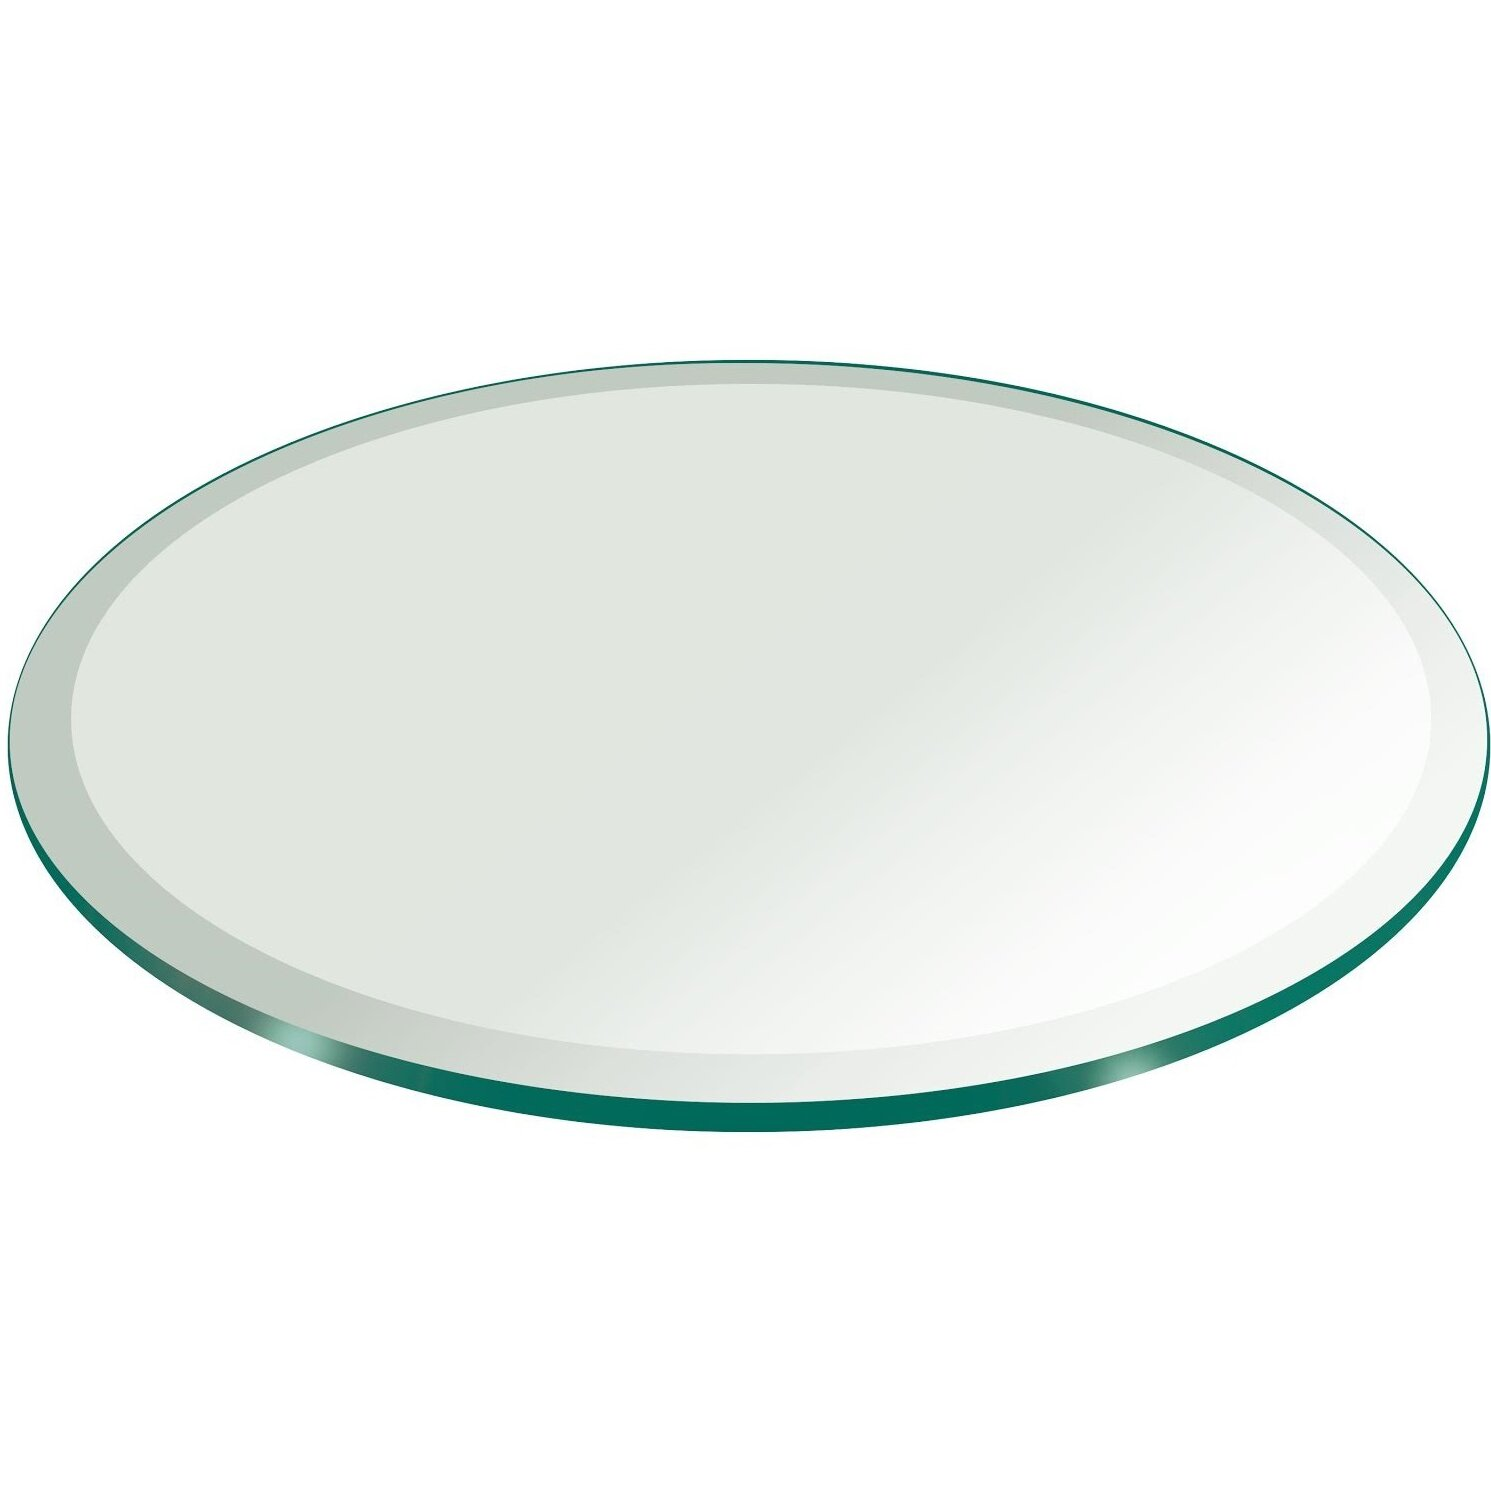 Beveled Glass Centerpiece Mirrors : Fab glass and mirror round beveled edge tempered